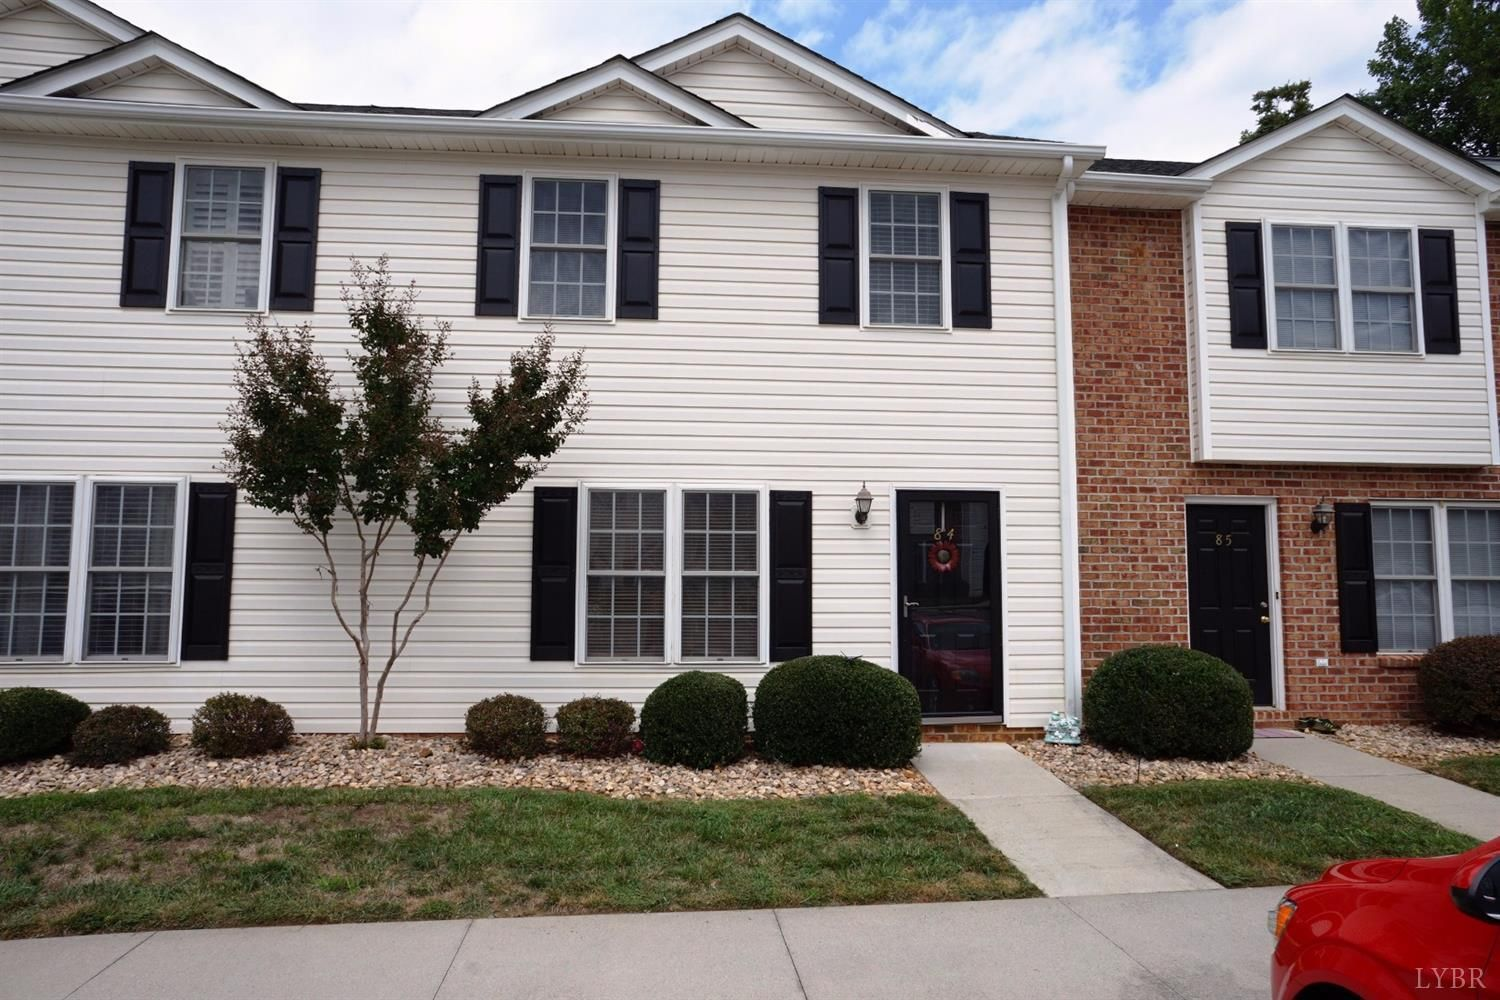 3600 Old Forest Rd #84, Lynchburg, VA 24501 - Recently Sold | Trulia